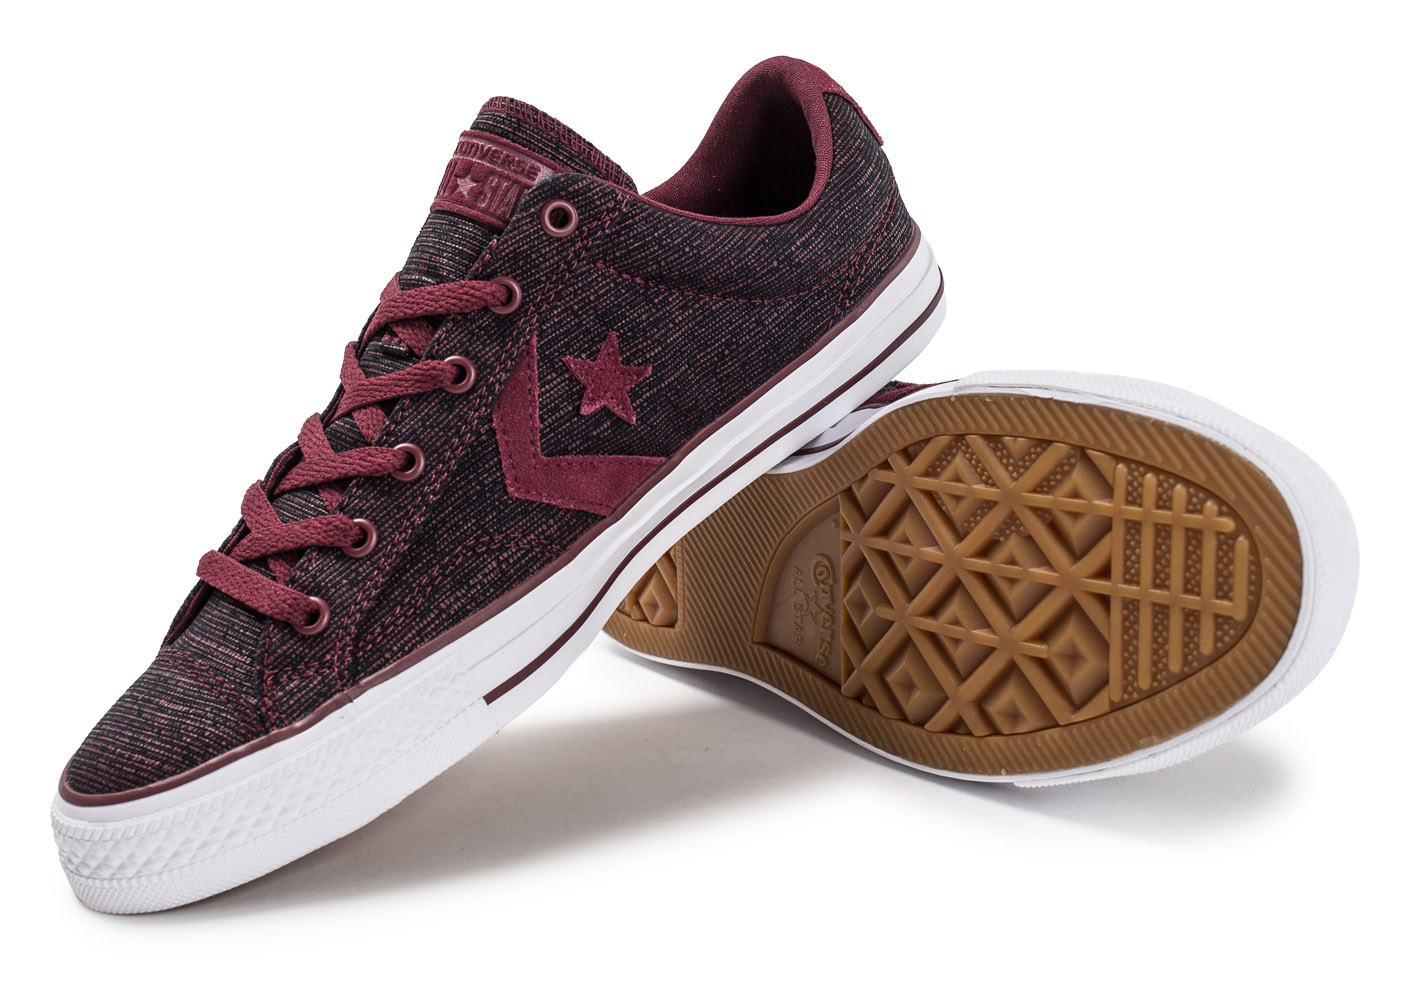 converse star player ox bordeaux baskets tennis homme. Black Bedroom Furniture Sets. Home Design Ideas